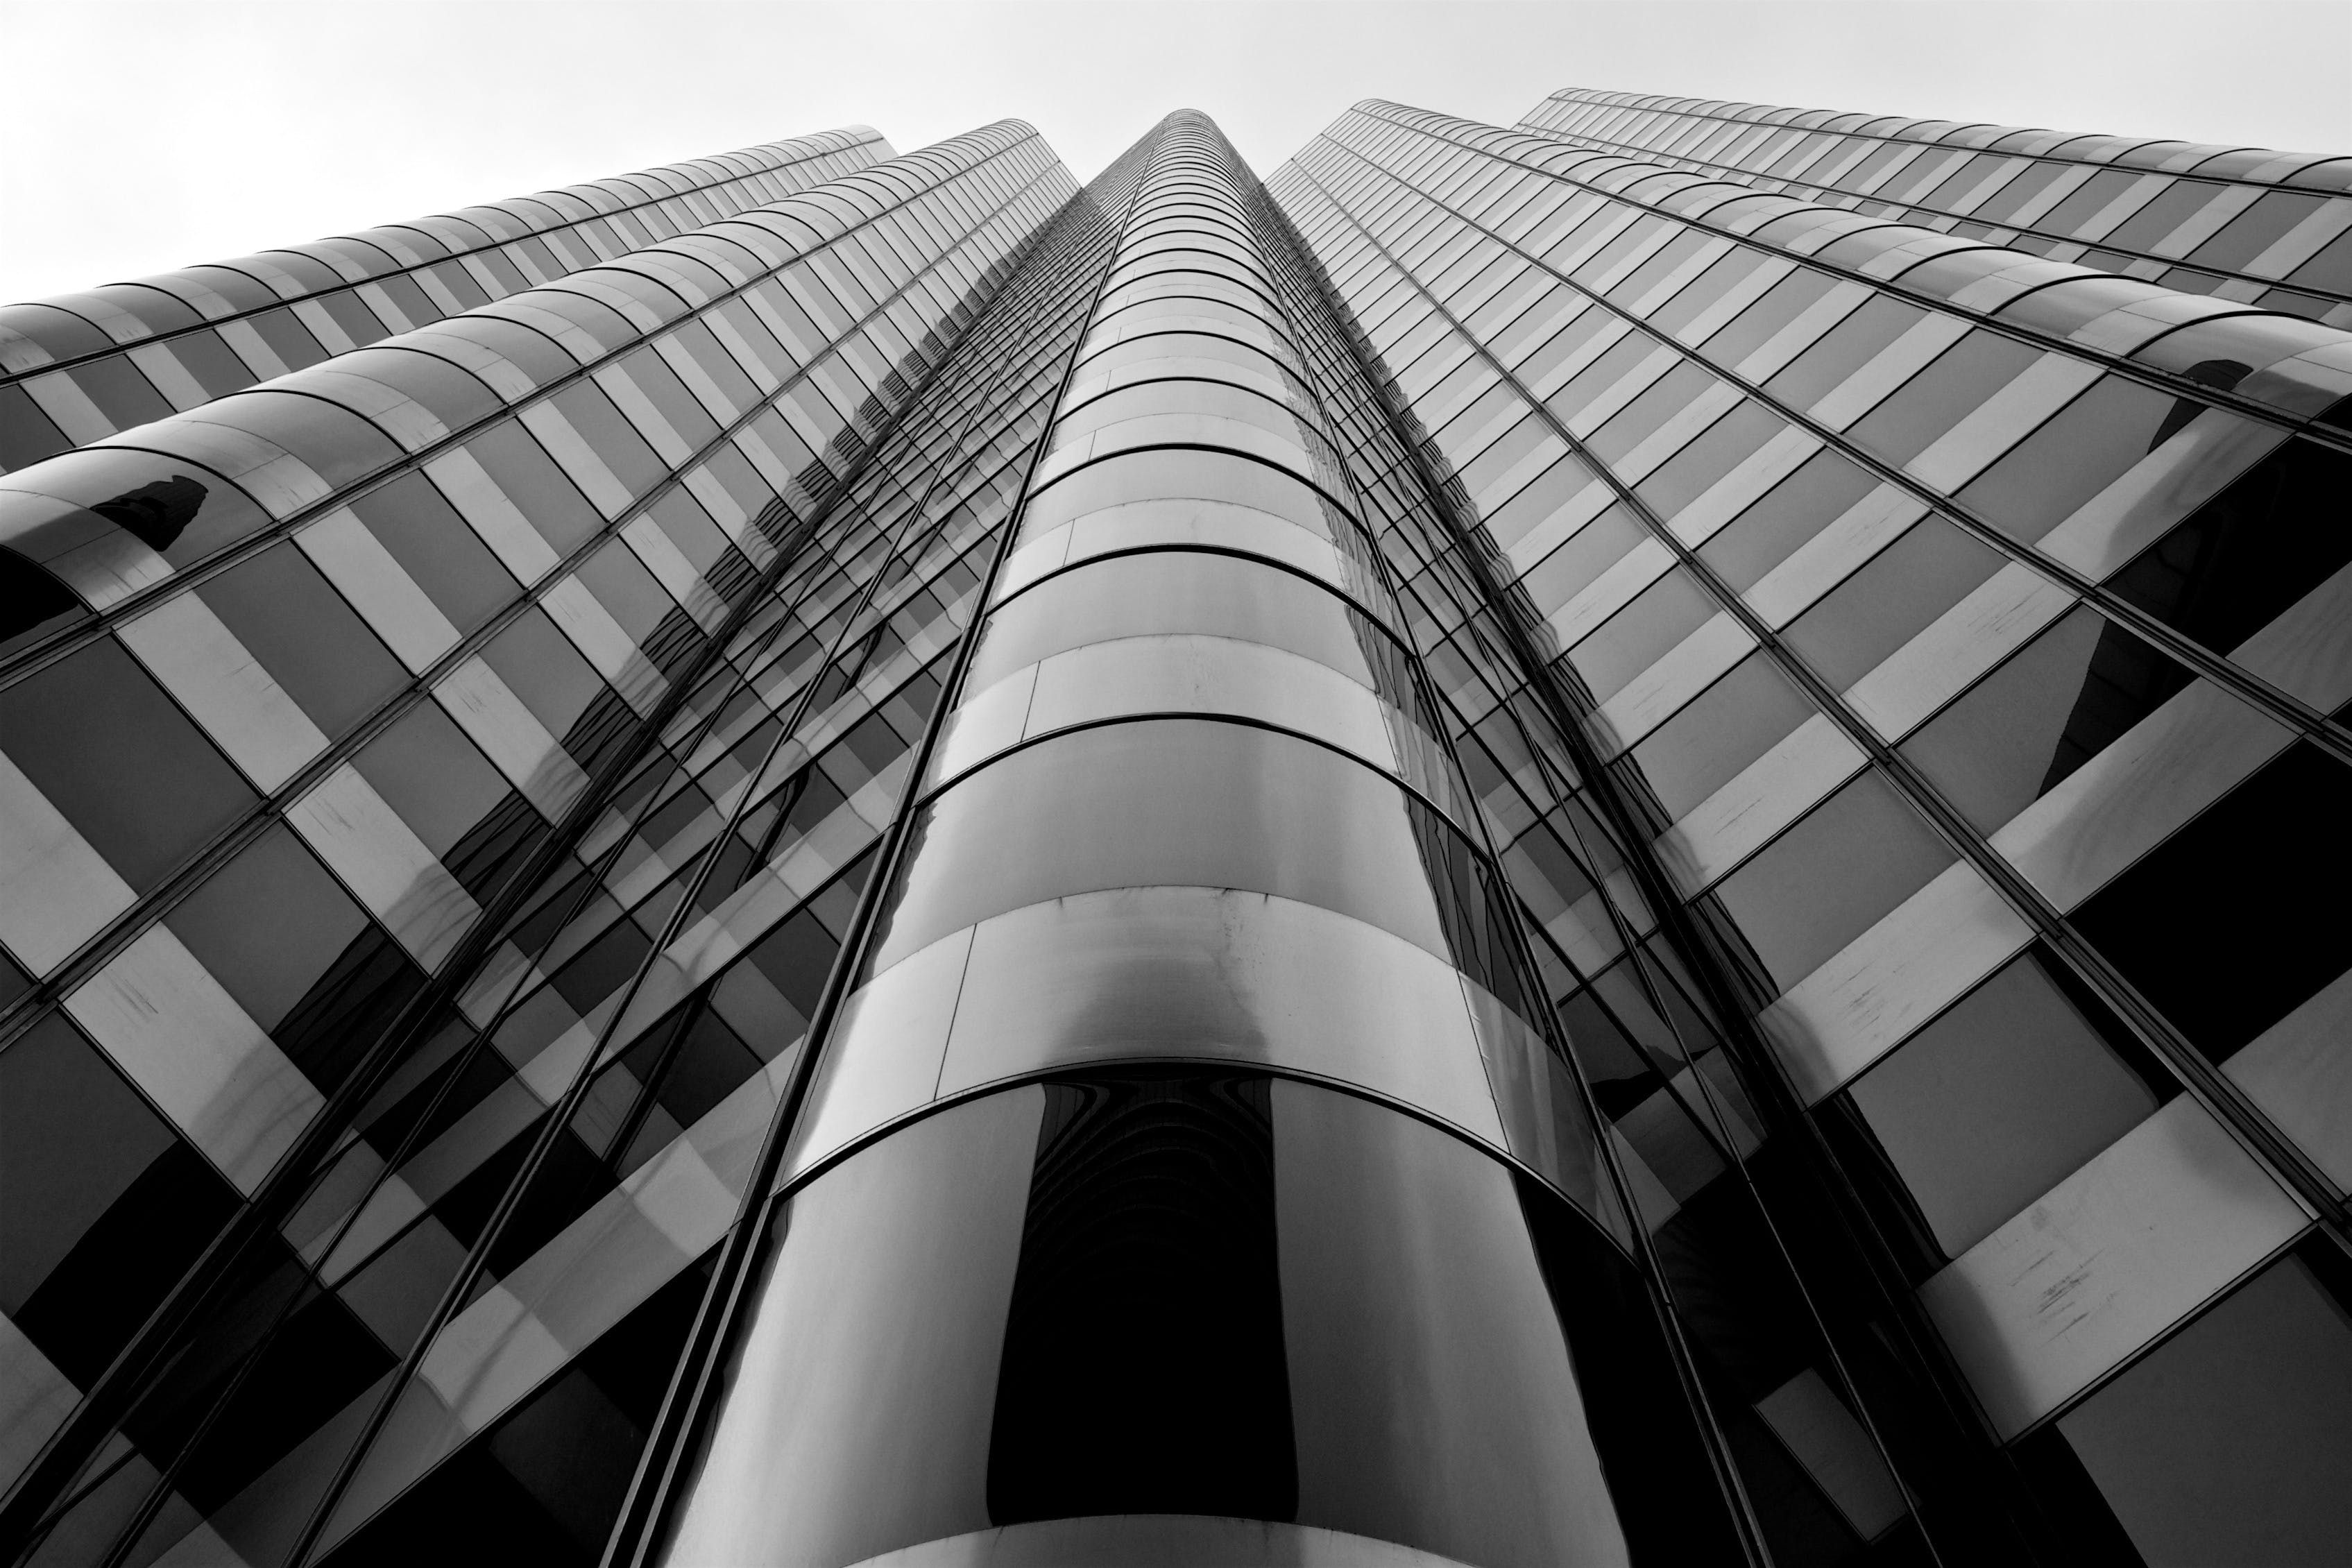 Low Angle Glass High Rise Building